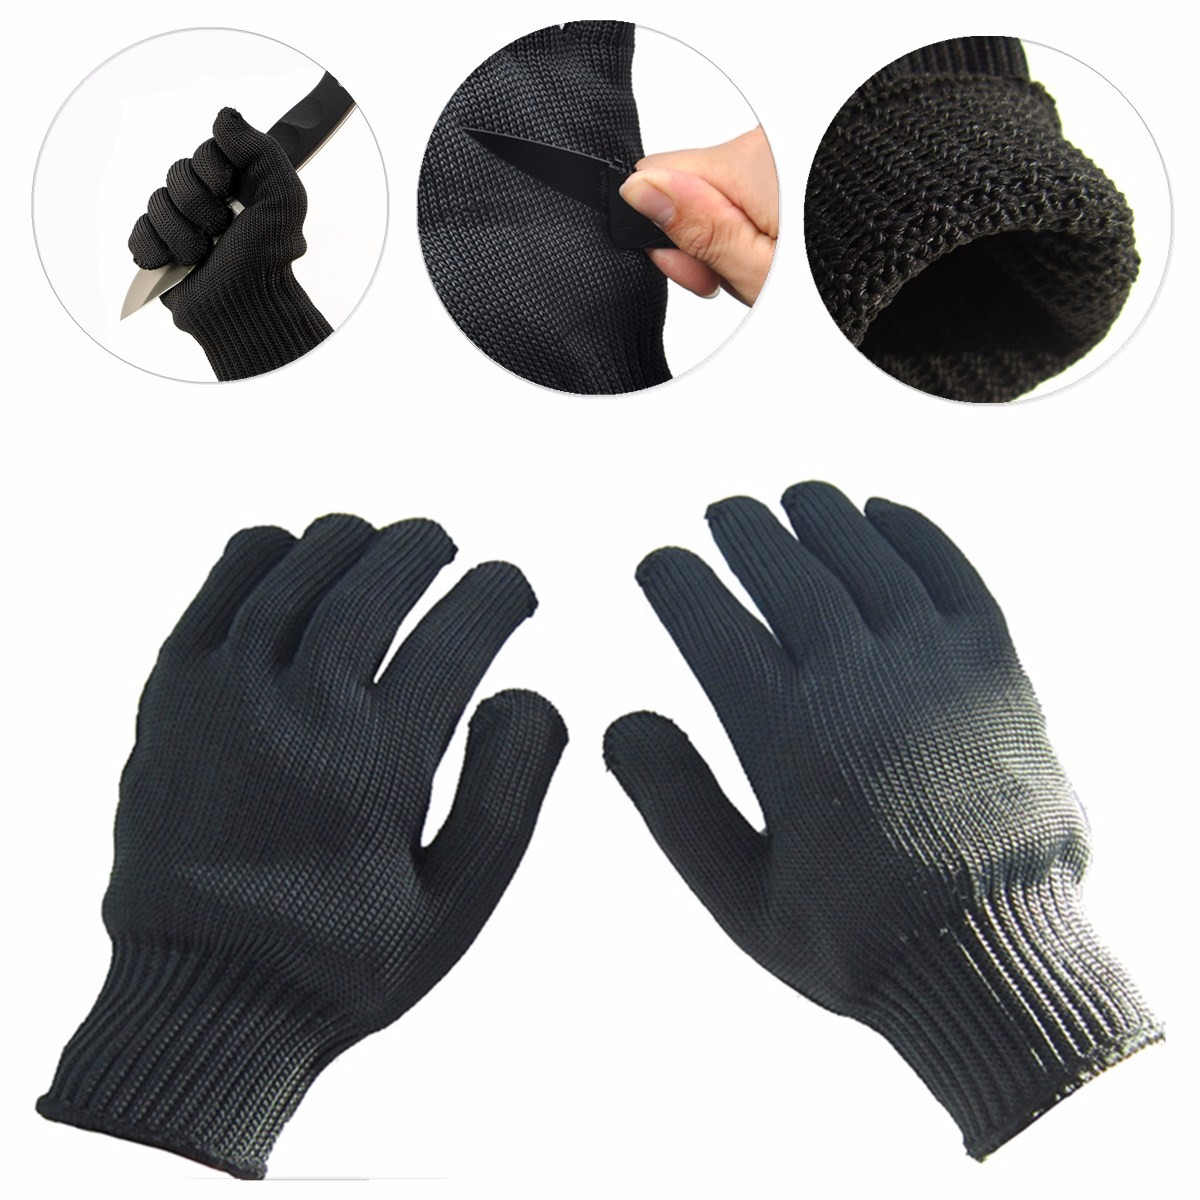 1 Pair Knife Cut Resistant Gloves Cutting And Slicing Protection Tool Cooking Tool